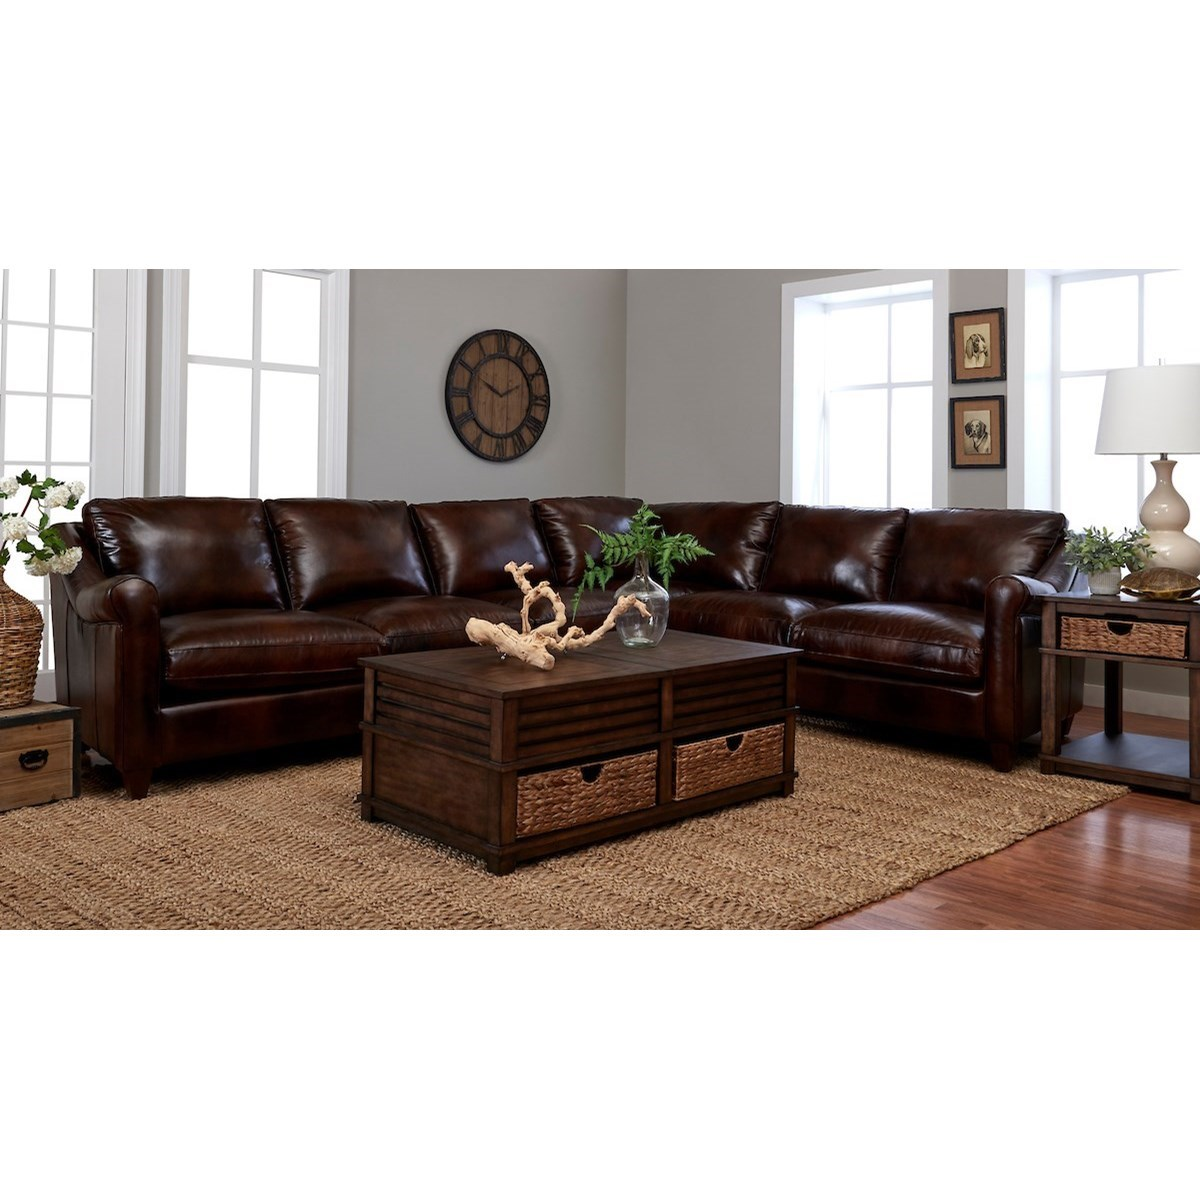 Isabella 5-Seat Sectional Sofa w/ RAF Corner Sofa by Klaussner at Johnny Janosik